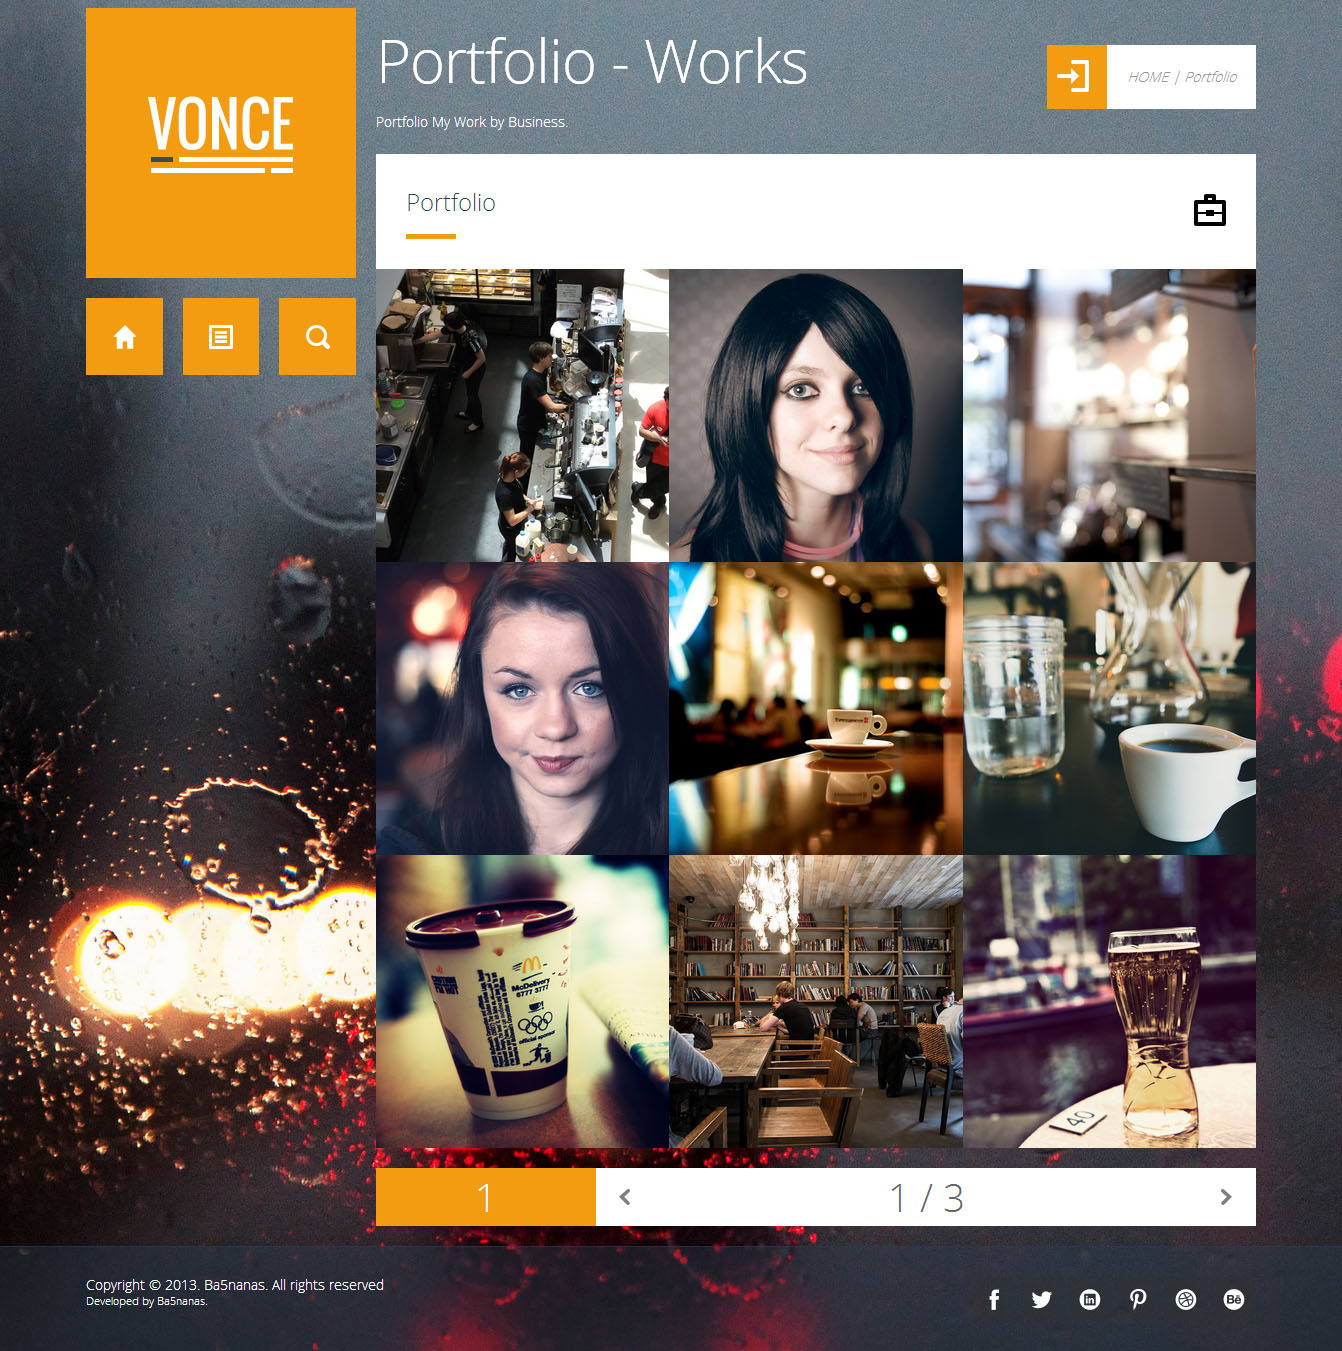 Vonce - I'm Improved button in the hover picture add to border-bottom. :)